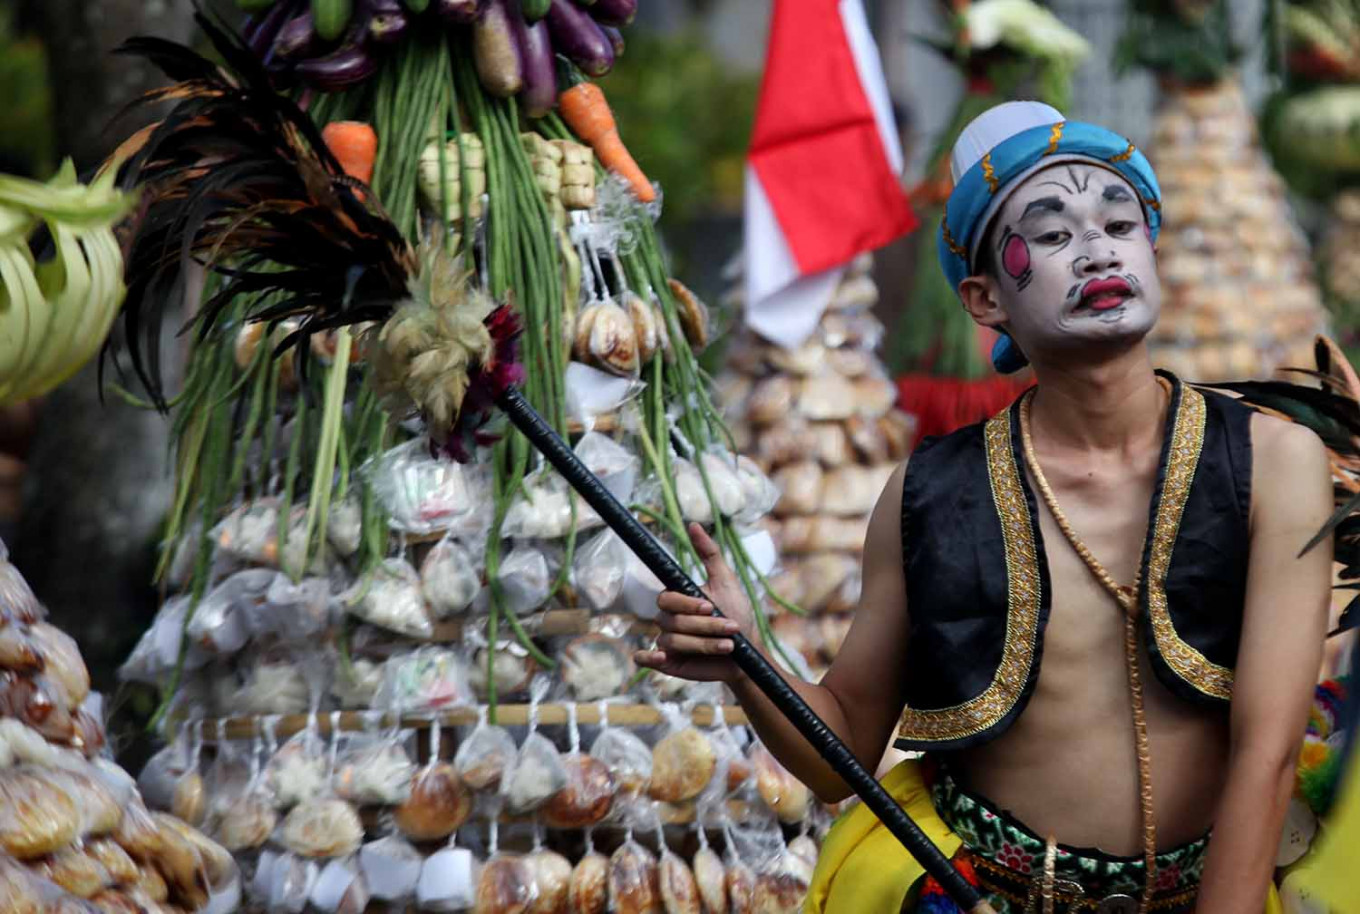 'Apeman': Yogyakarta's way to welcome Ramadan